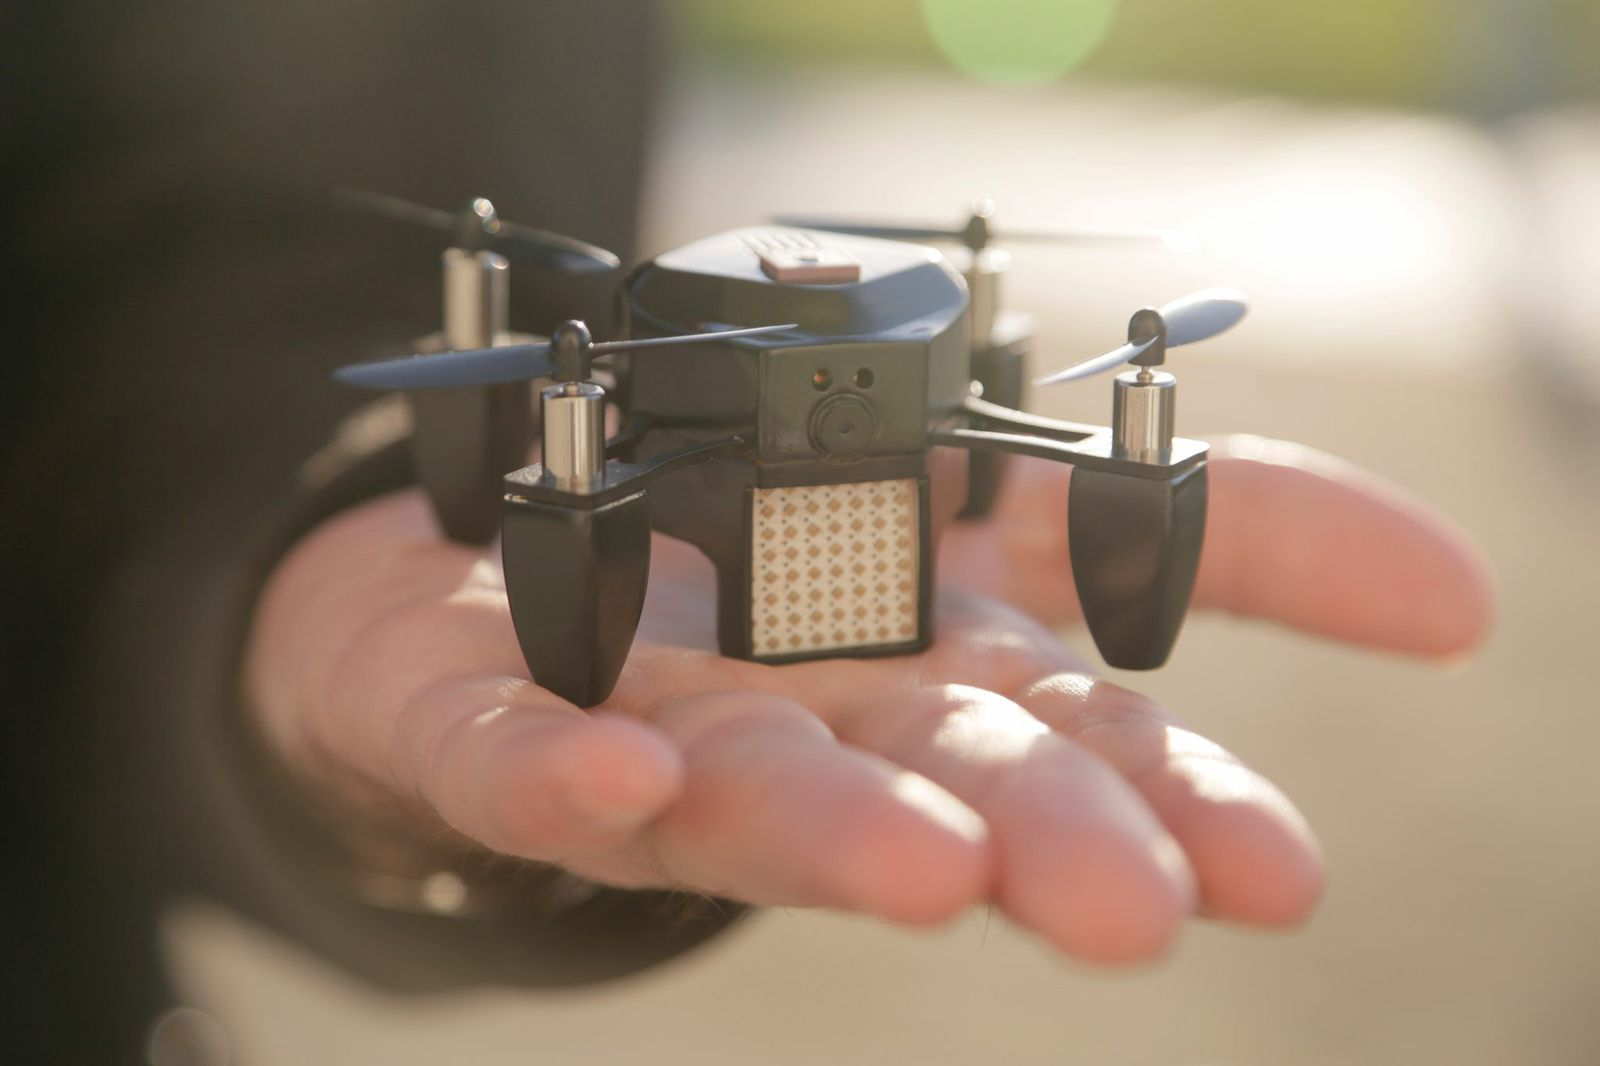 Zano 'selfie' drone to debut at CES